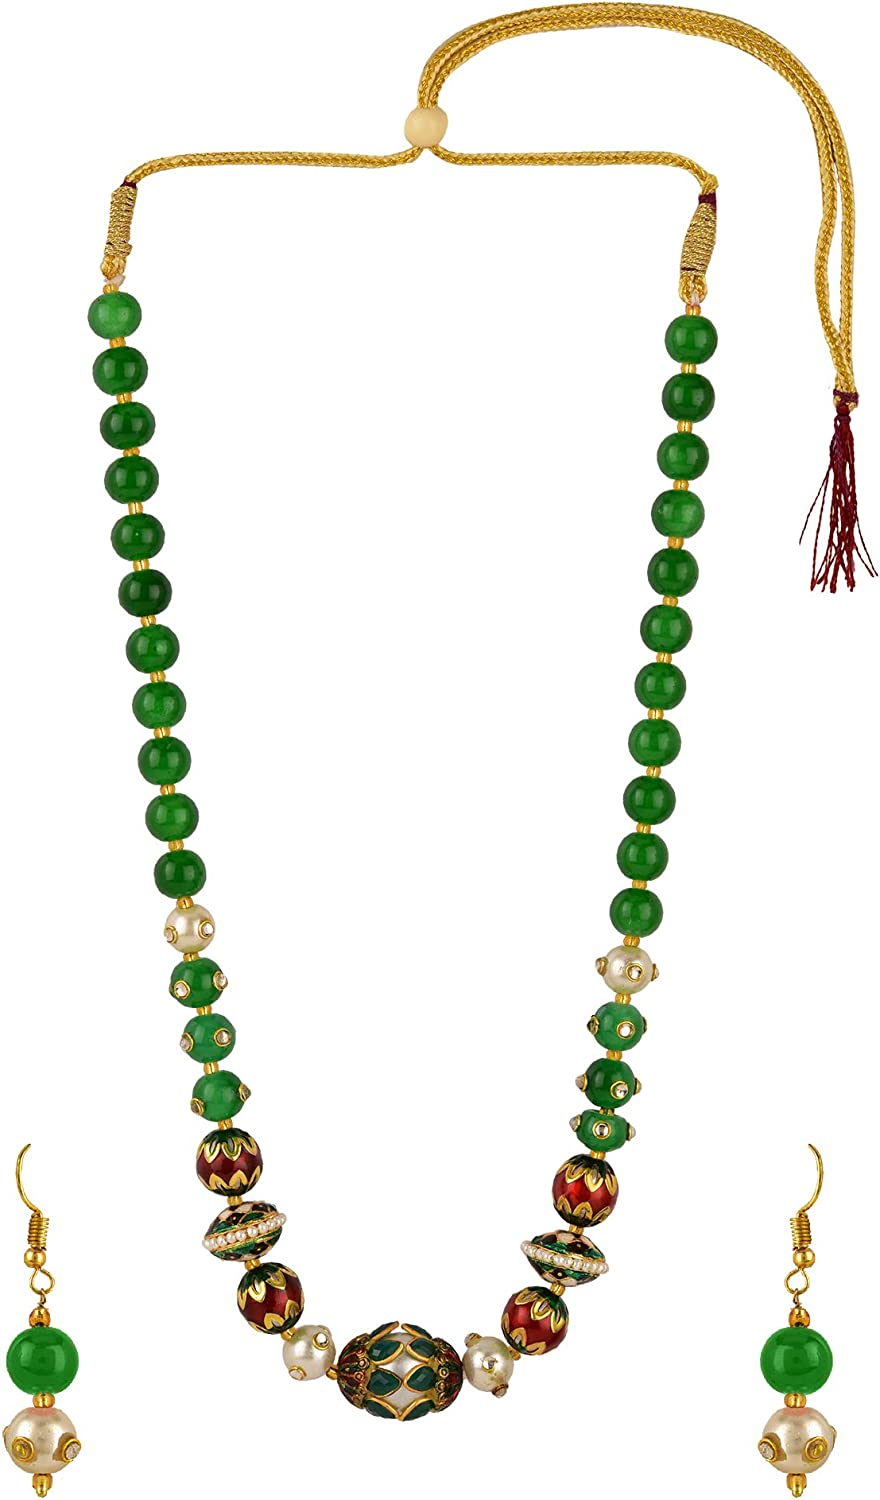 Efulgenz Boho Indian Bollywood Antique Gold Plated Faux Pearl Beaded Bridal Wedding Strand Statement Necklace Earrings Jewelry Set